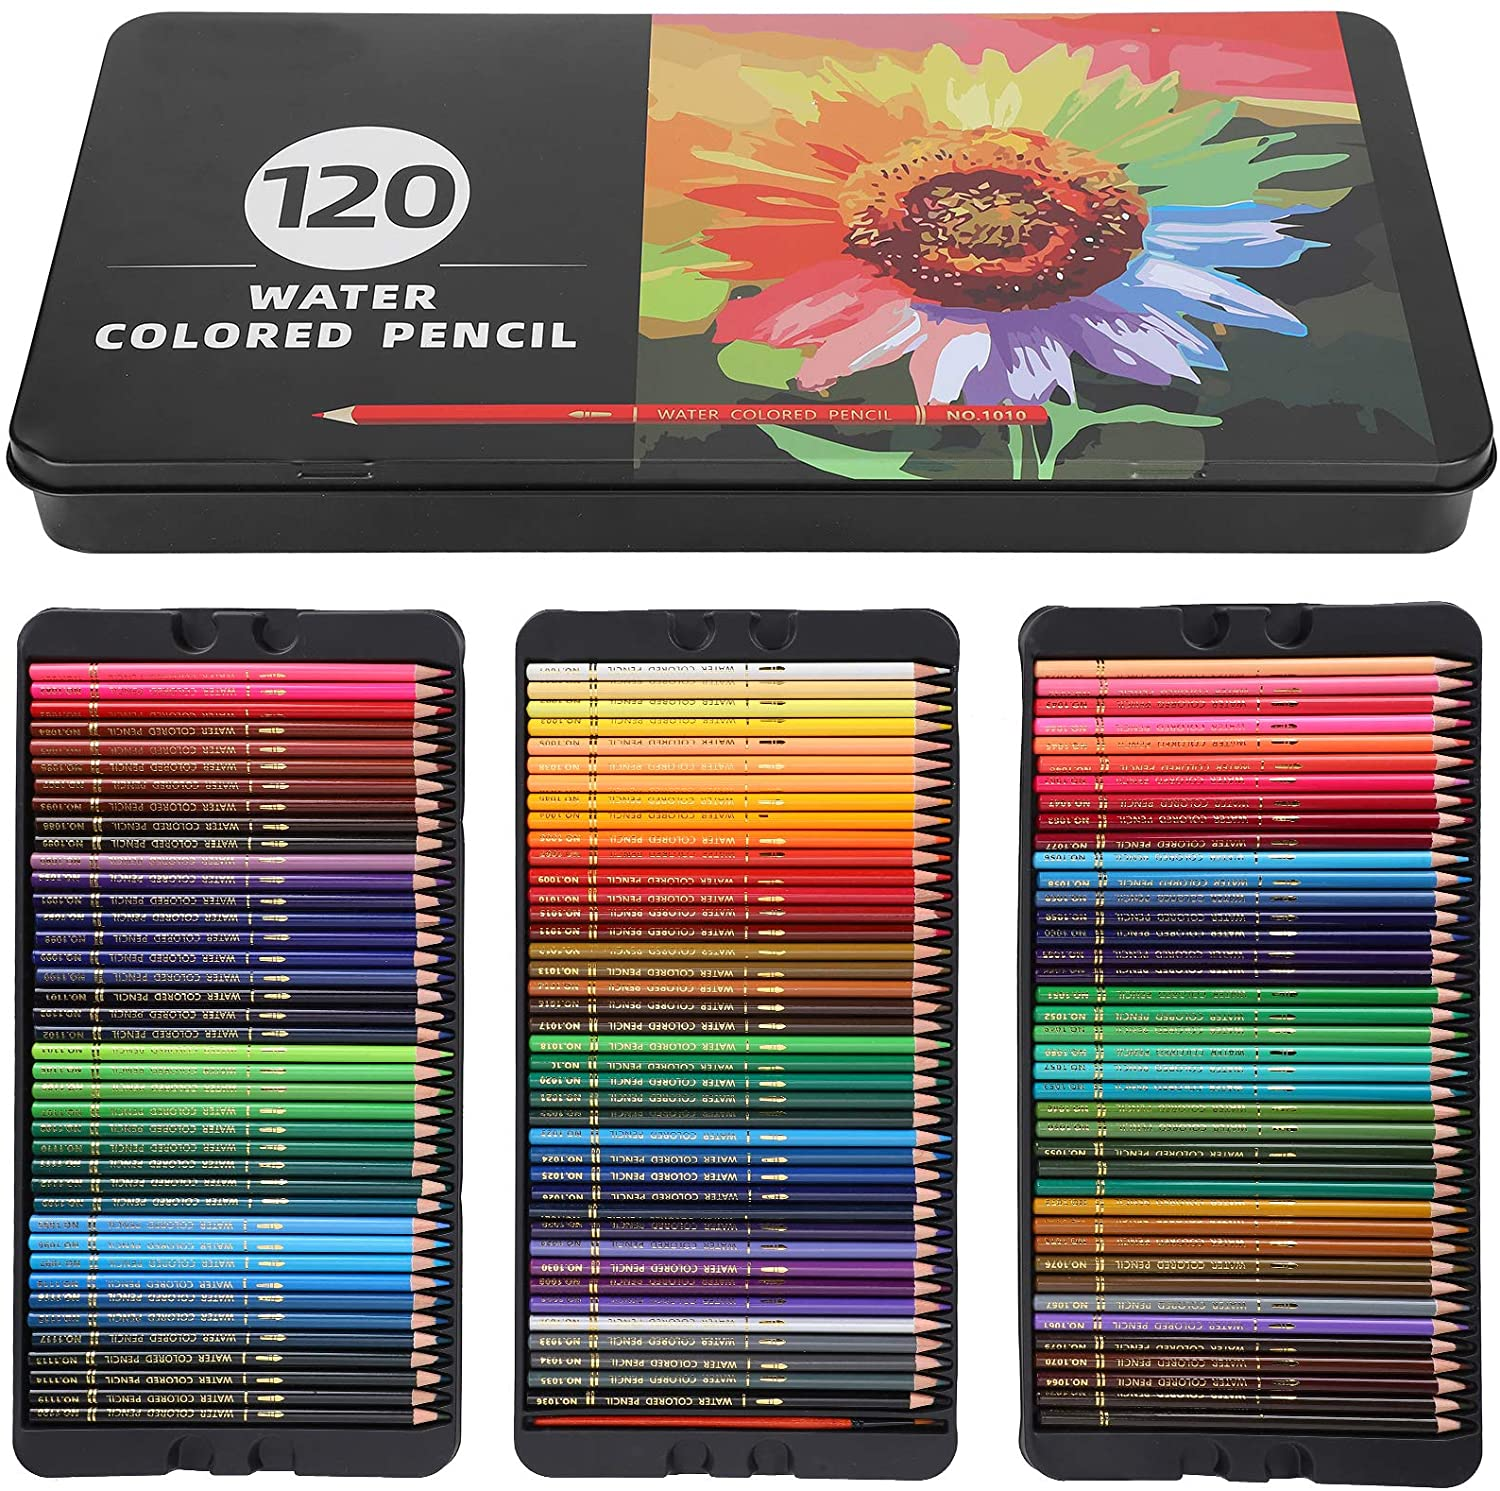 Colored Pencils Set, 120 Colouring Professional Water Soluble Pencil Set with Brush and Metal Box for Kids and Adult Coloring Book